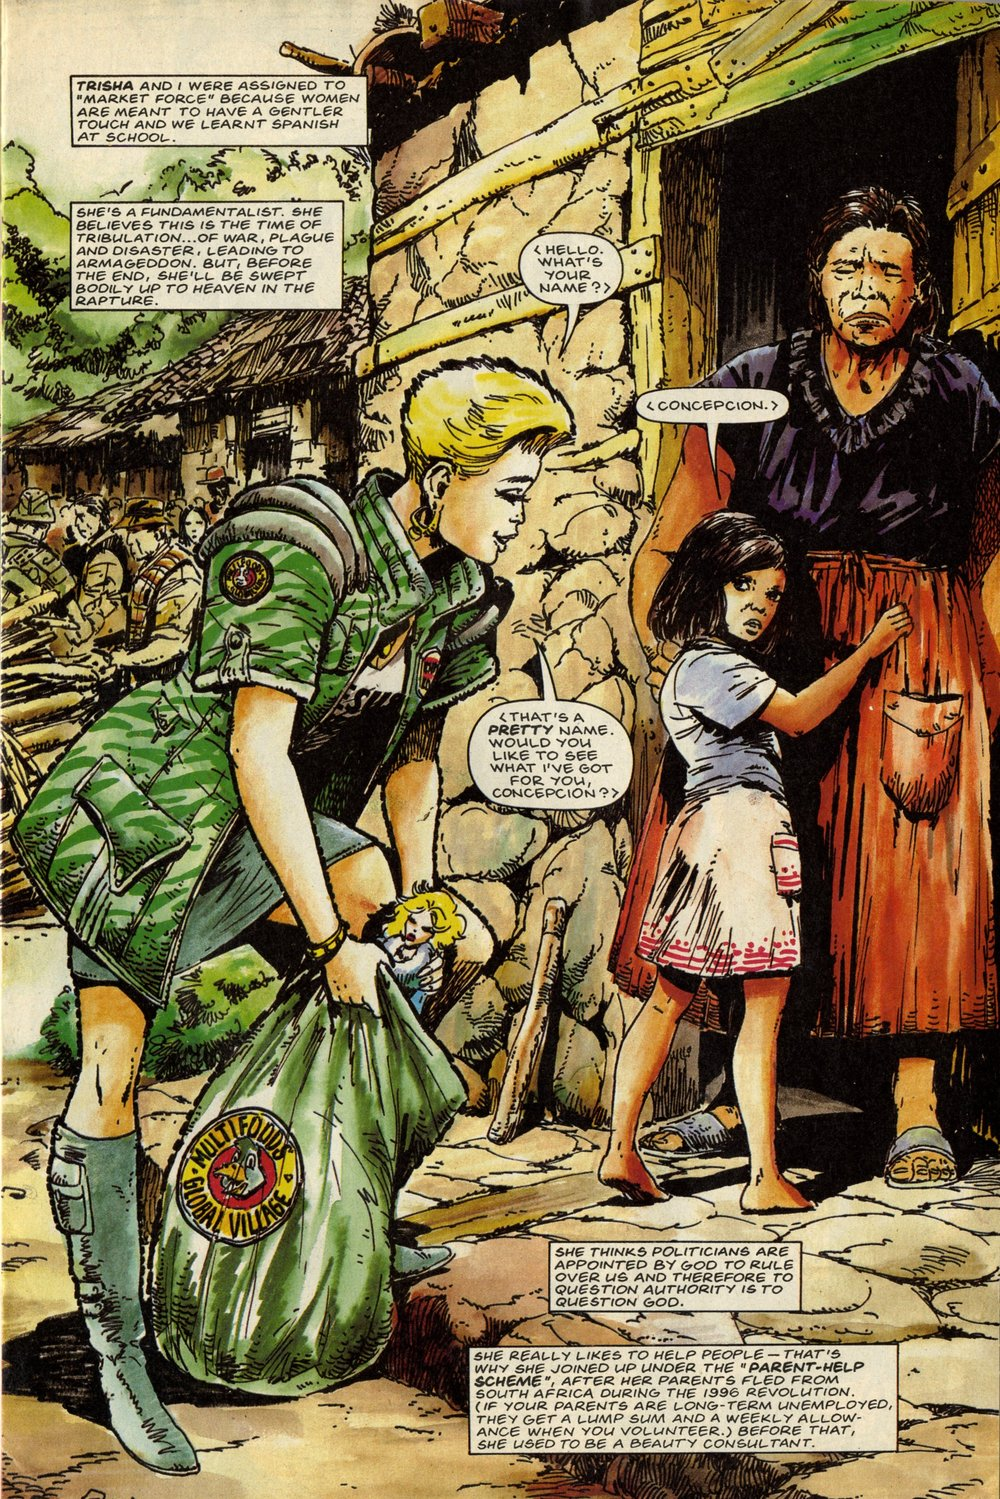 Third World War: Pat Mills (writer), Carlos Ezquerra (artist)